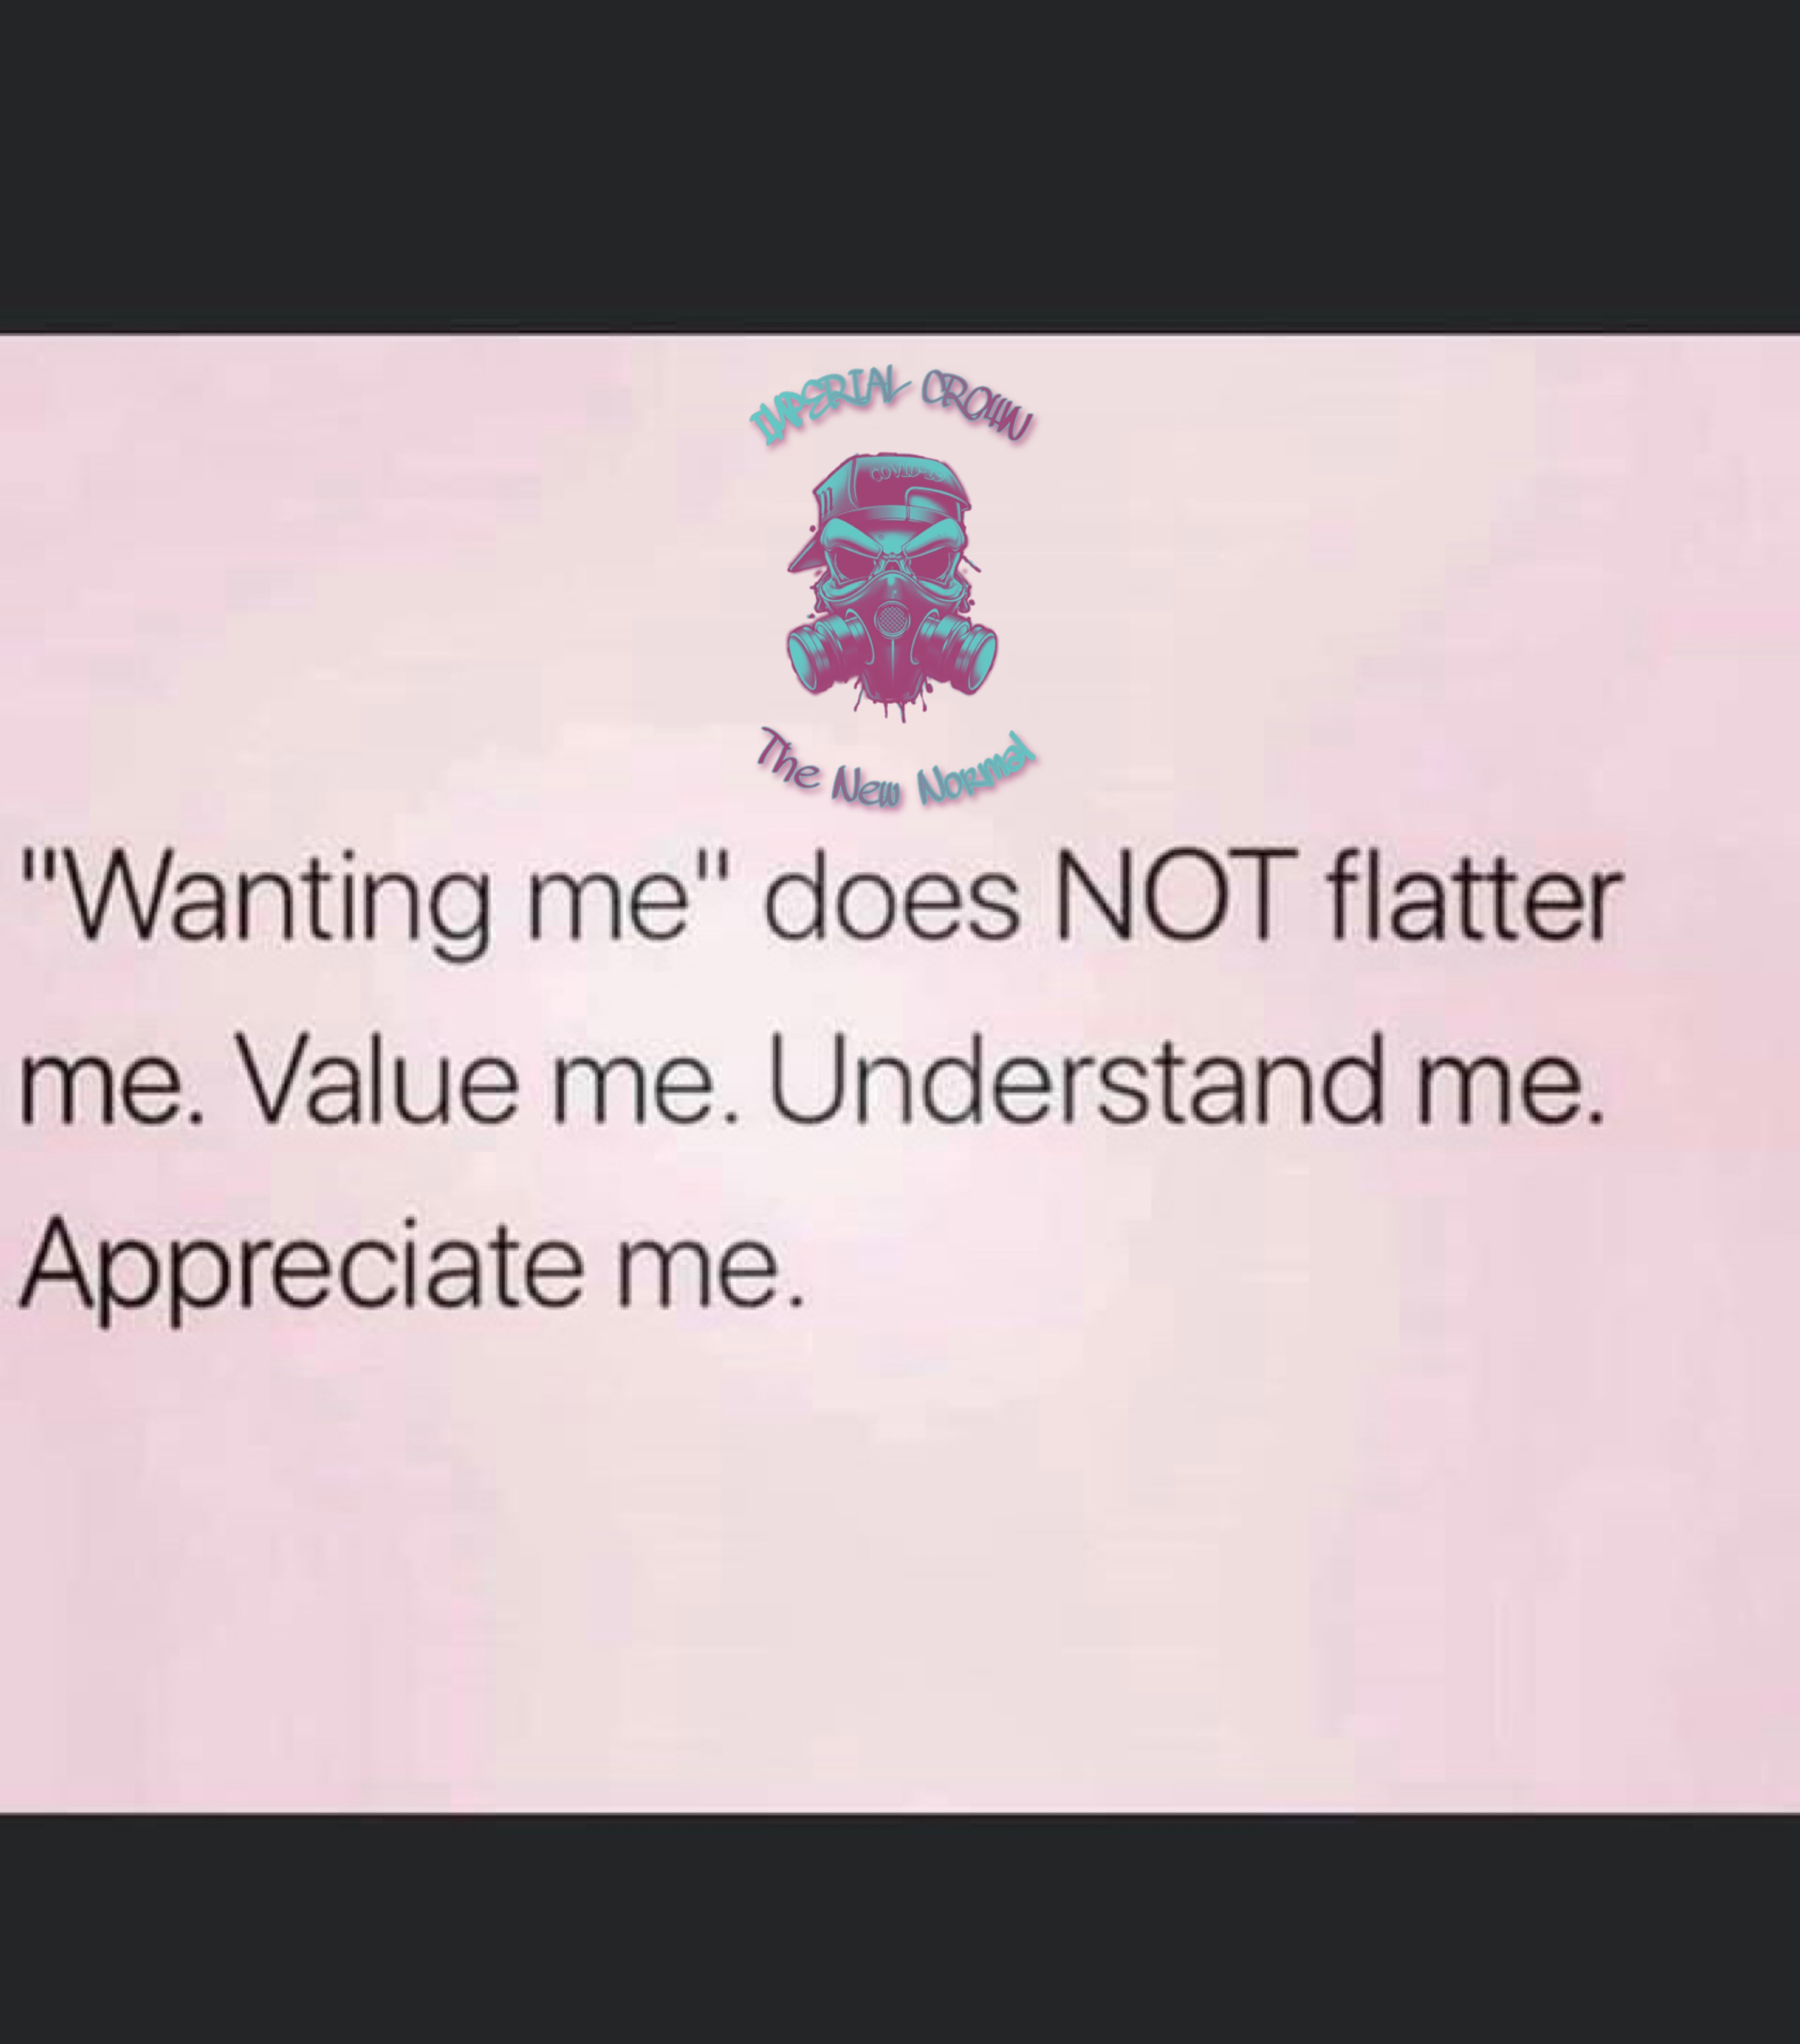 Wanting me does not flatter me